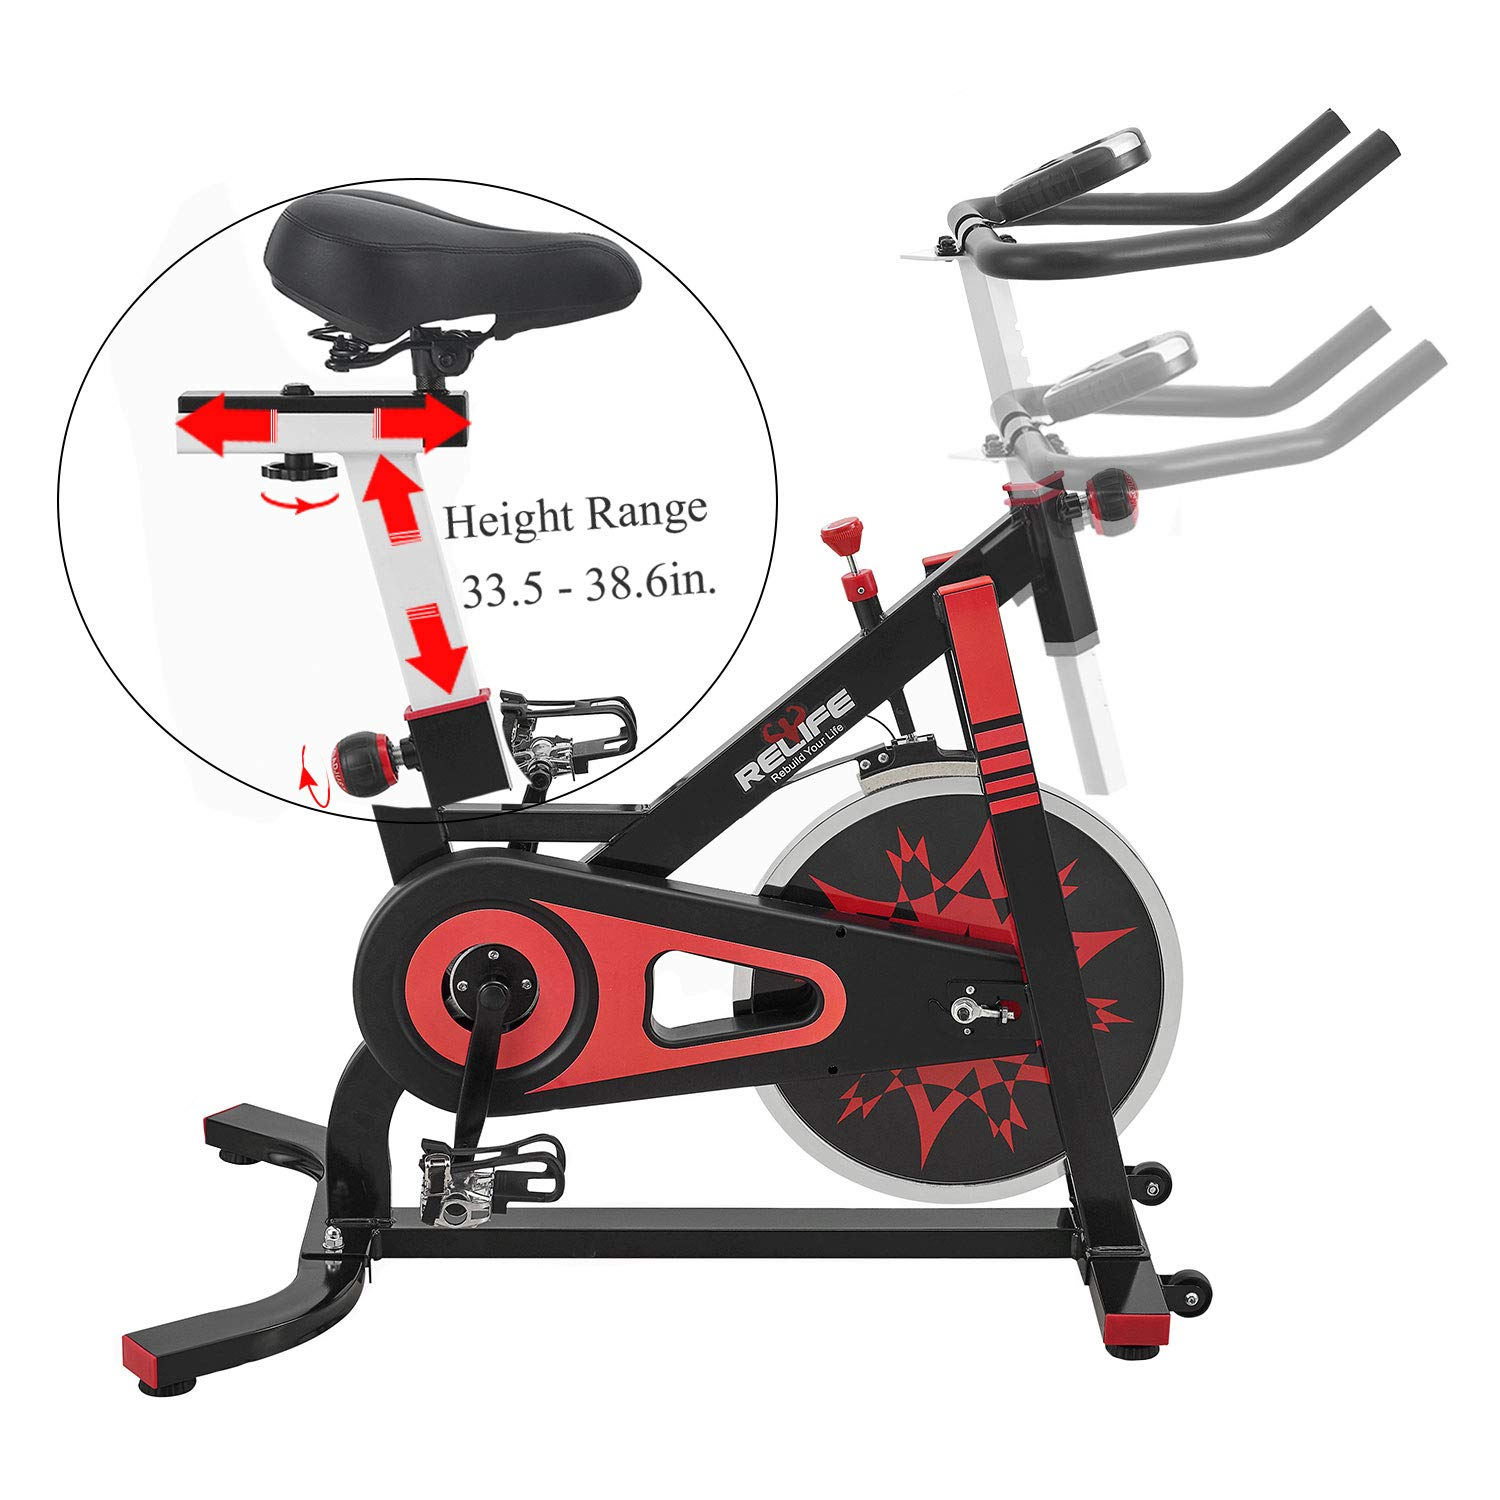 RELIFE REBUILD YOUR LIFE Spin Bike Stationary Indoor Cycling Gym Resistance Workout Home Gym Fitness Machine Exercise Bike by RELIFE REBUILD YOUR LIFE (Image #5)